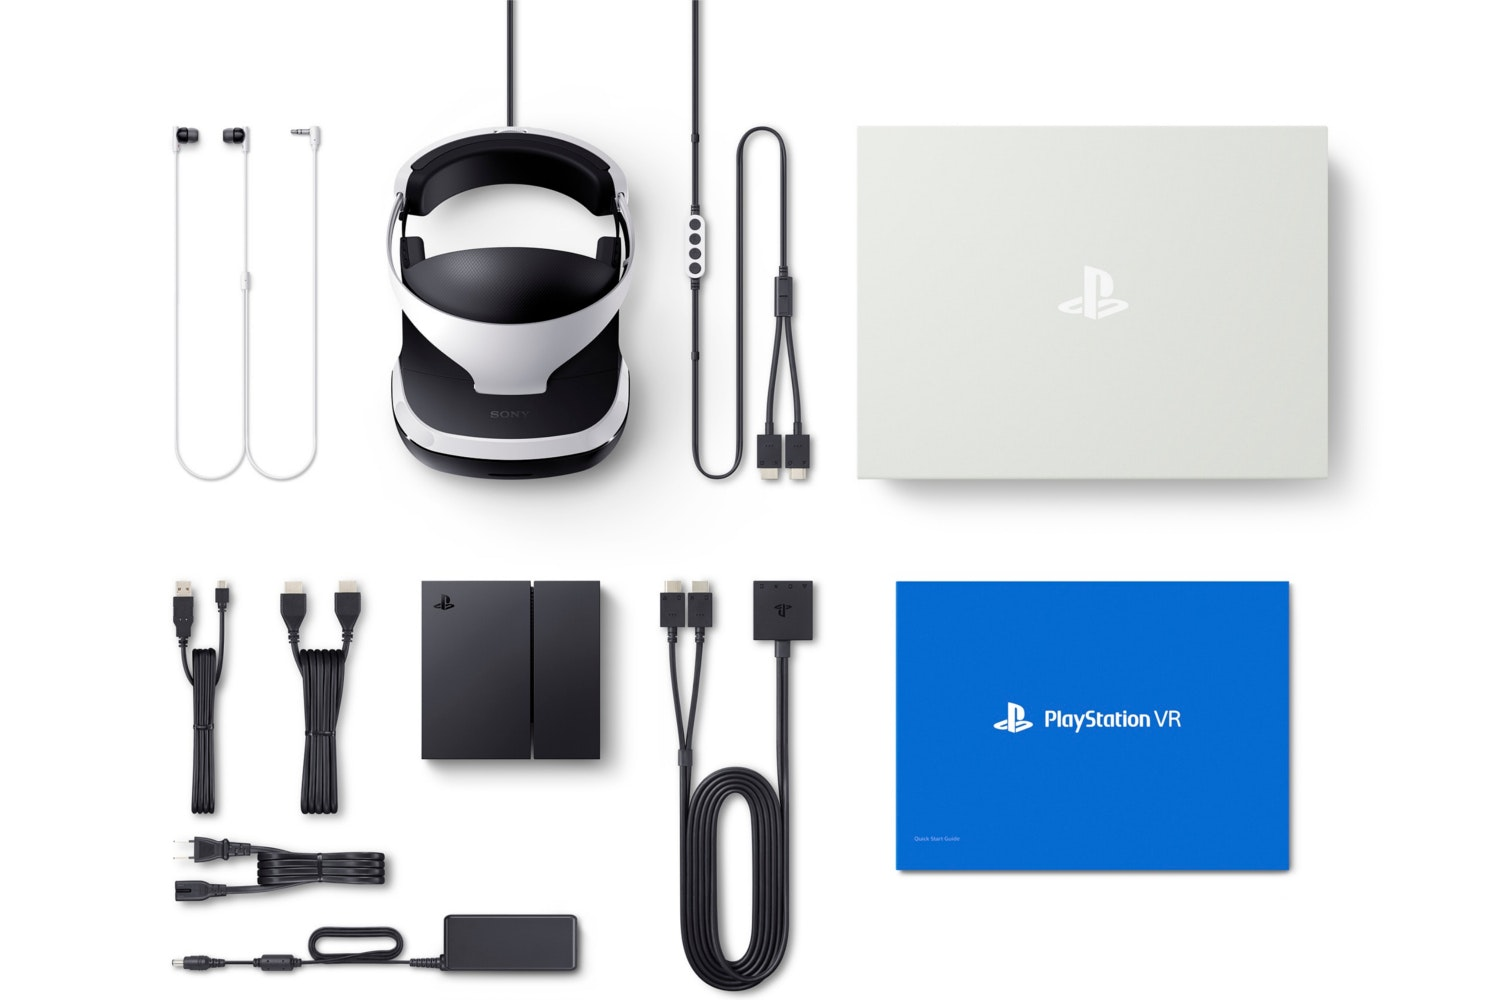 Playstation VR | PS VR